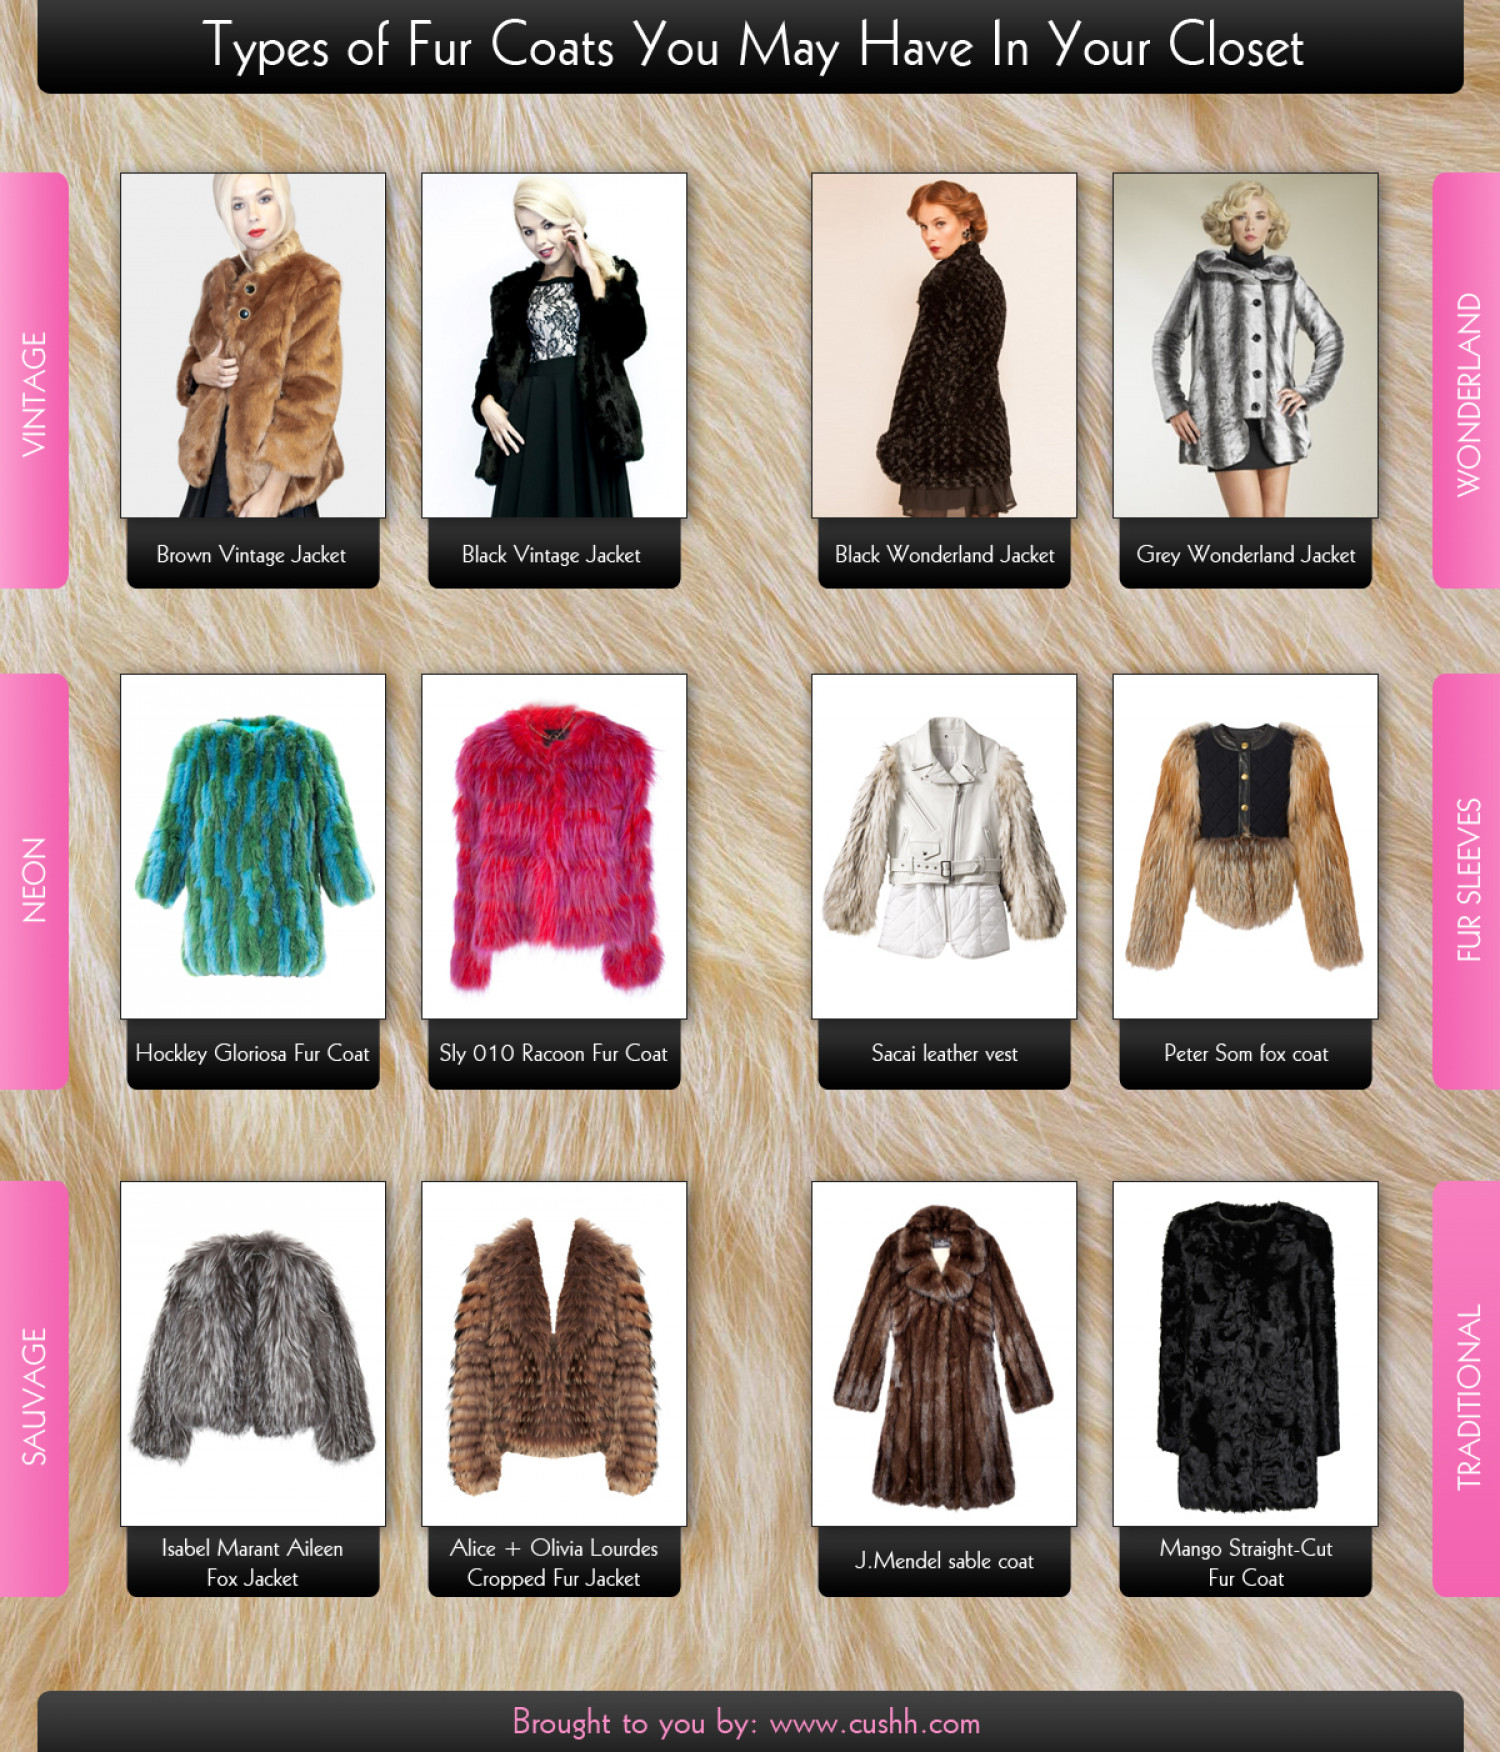 12 Types of Fur Coats You May Have In Your Closet | Visual.ly